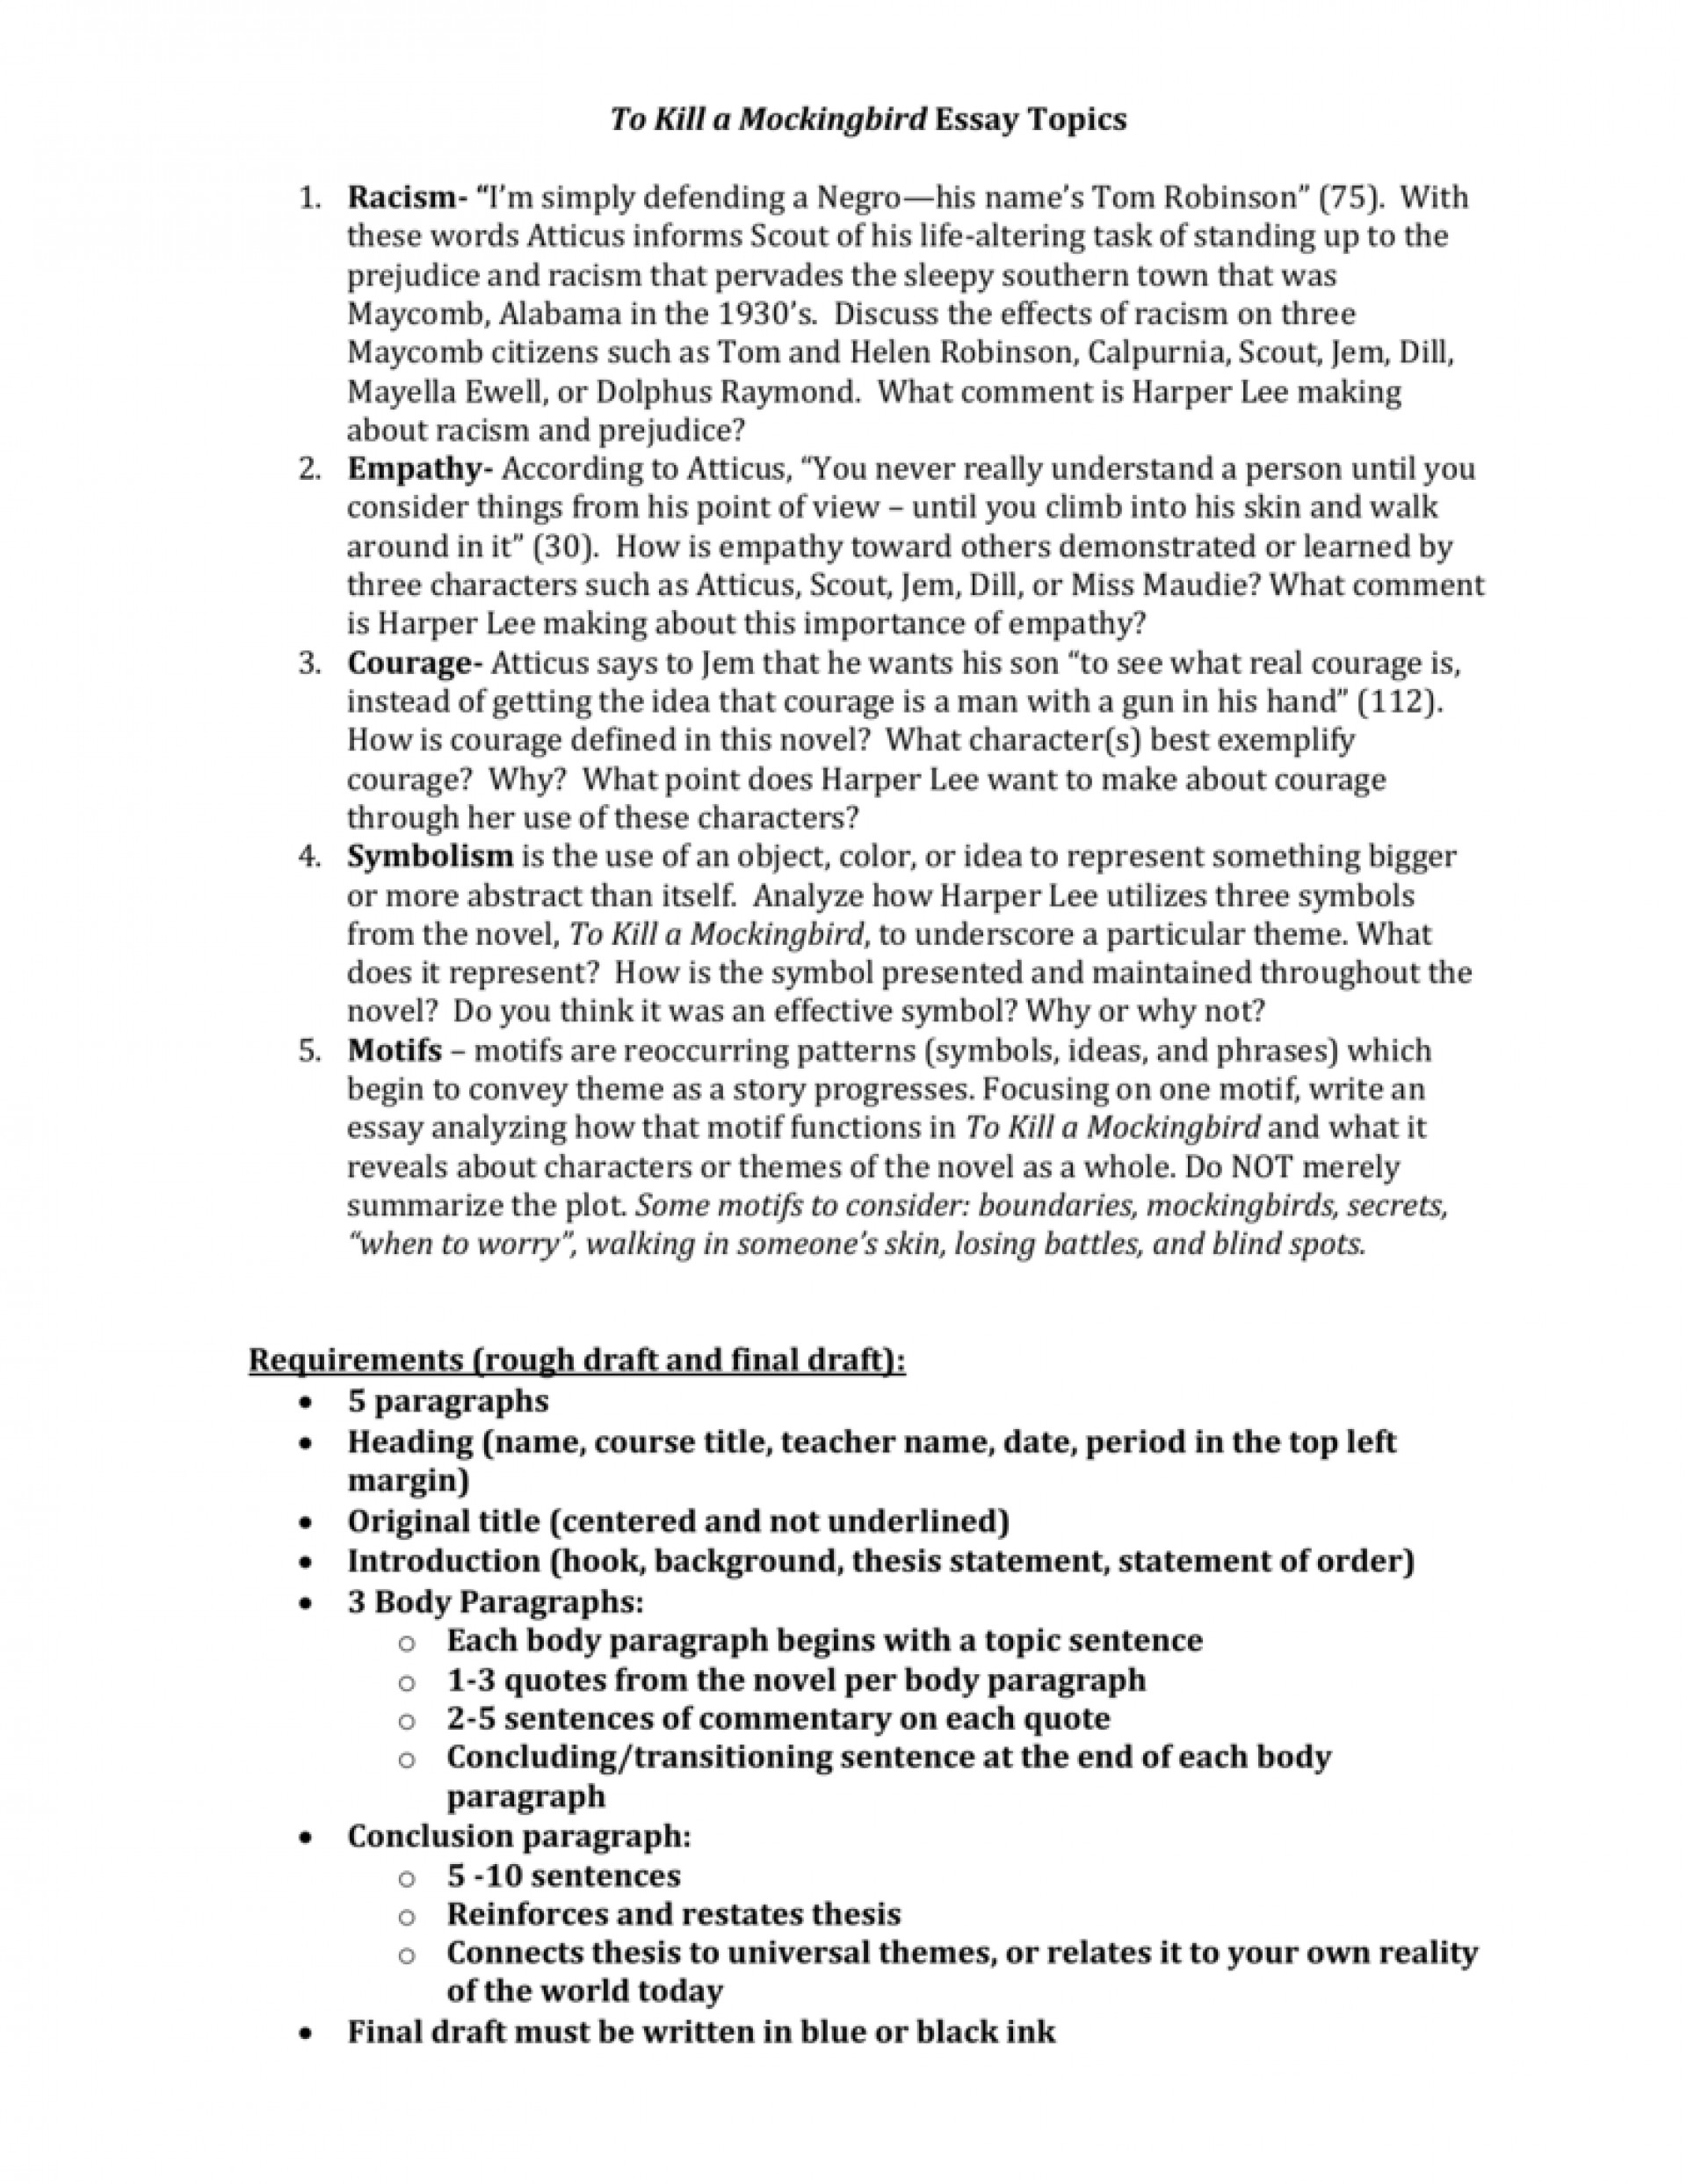 004 008003557 1 To Kill Mockingbird Essay Topics Stunning A Writing Prompts By Chapter Research Paper Pdf 1920